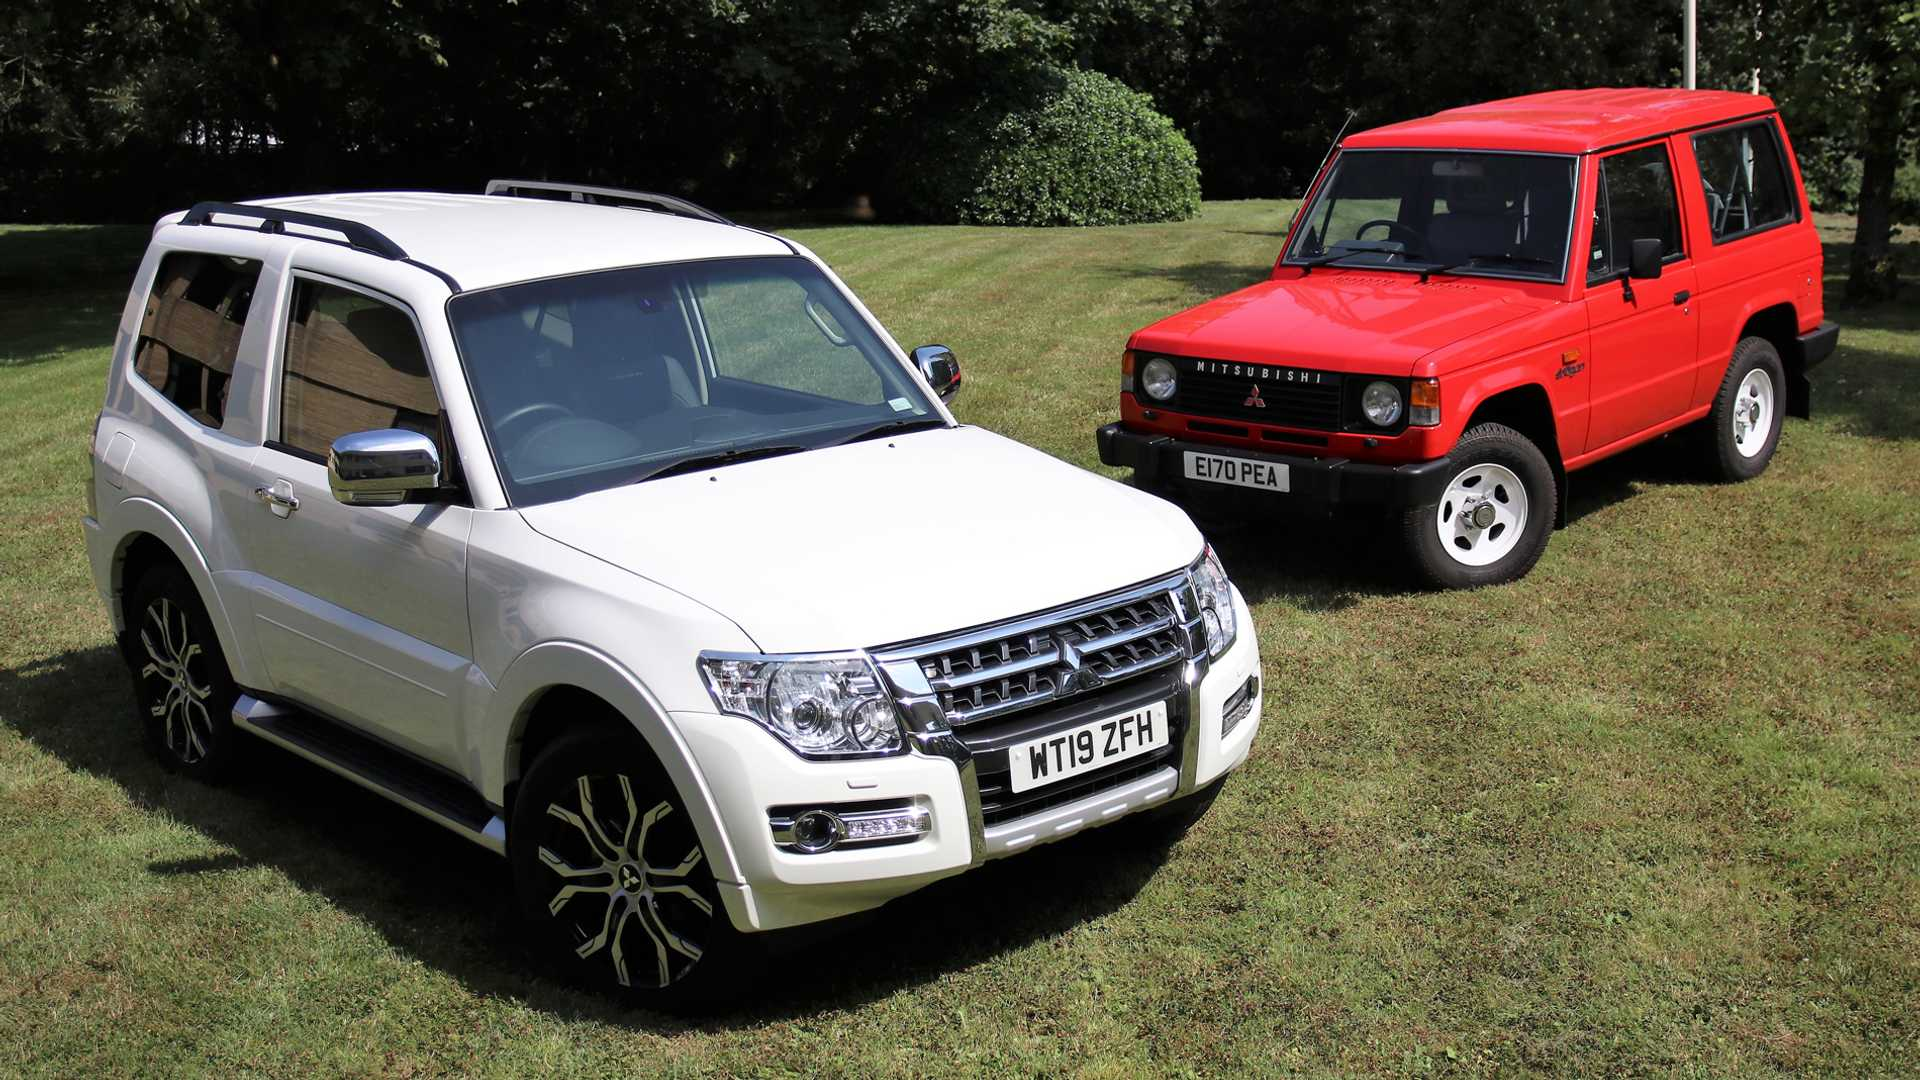 This is the last Mitsubishi Shogun to be registered in the UK